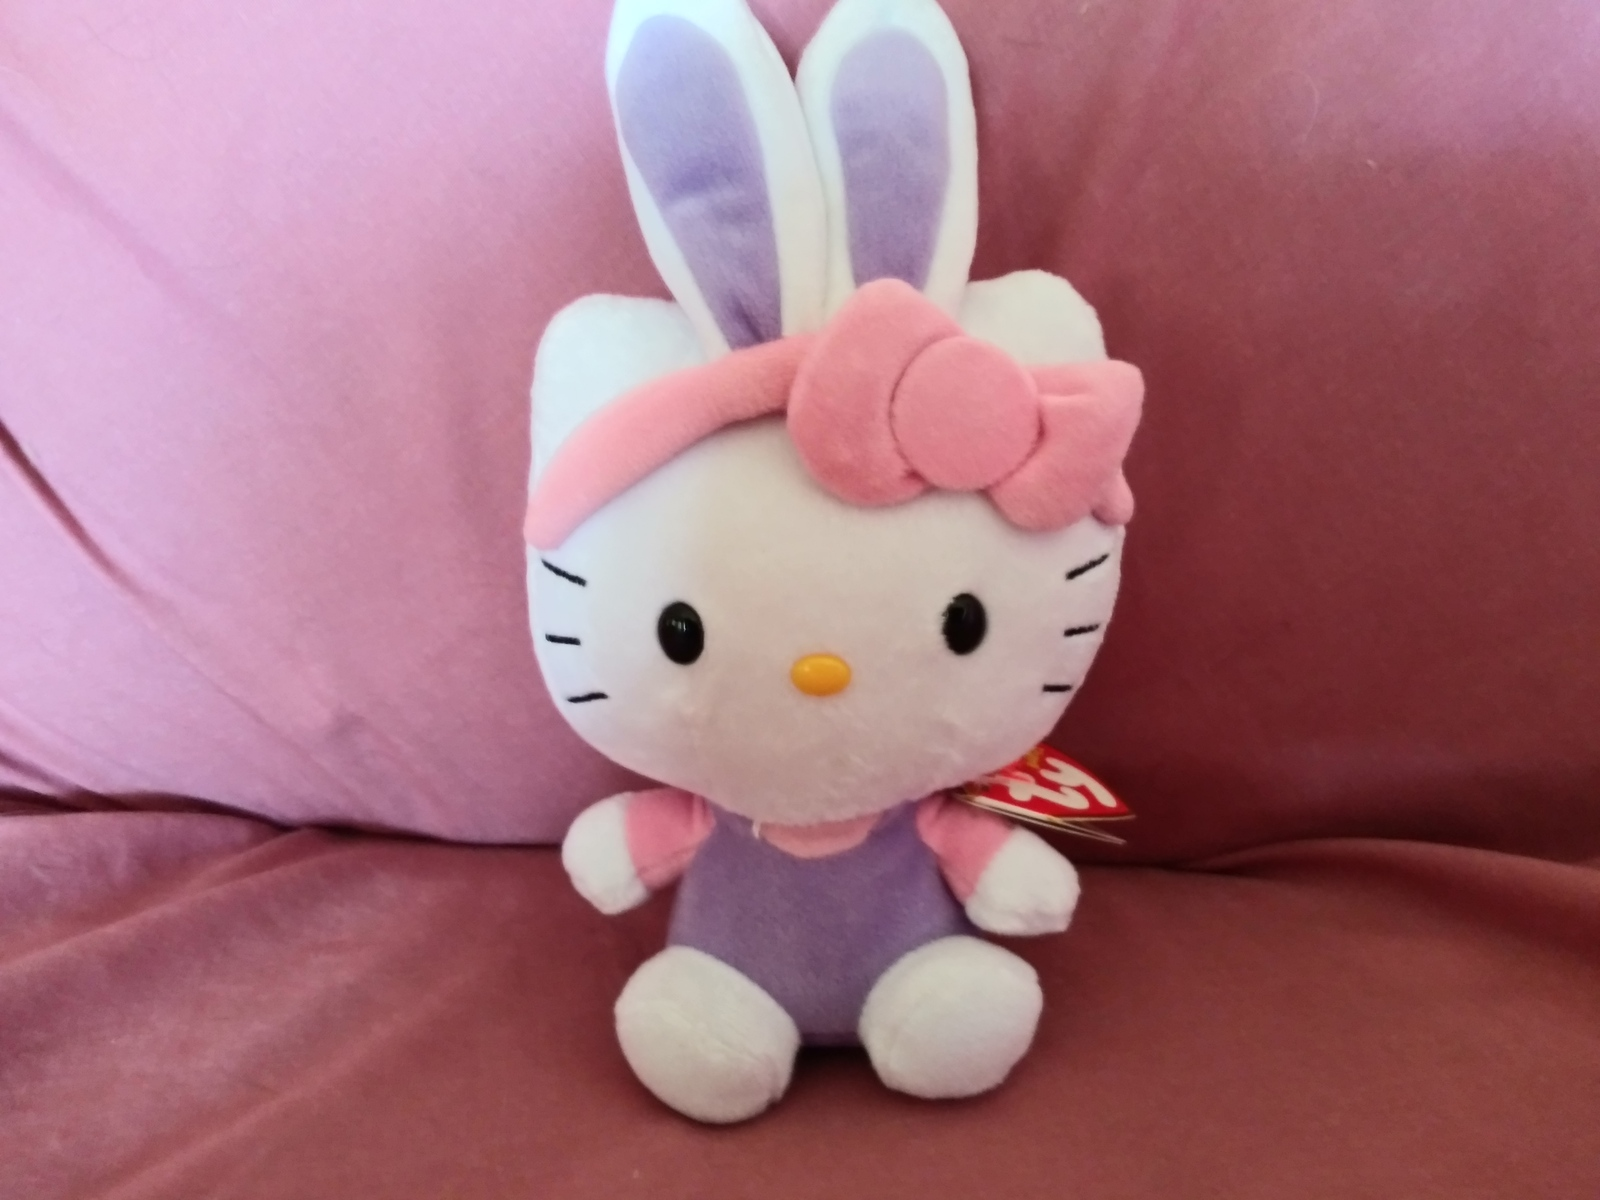 Hello Kitty Easter Bunny Ears Plush Toy - $12.00